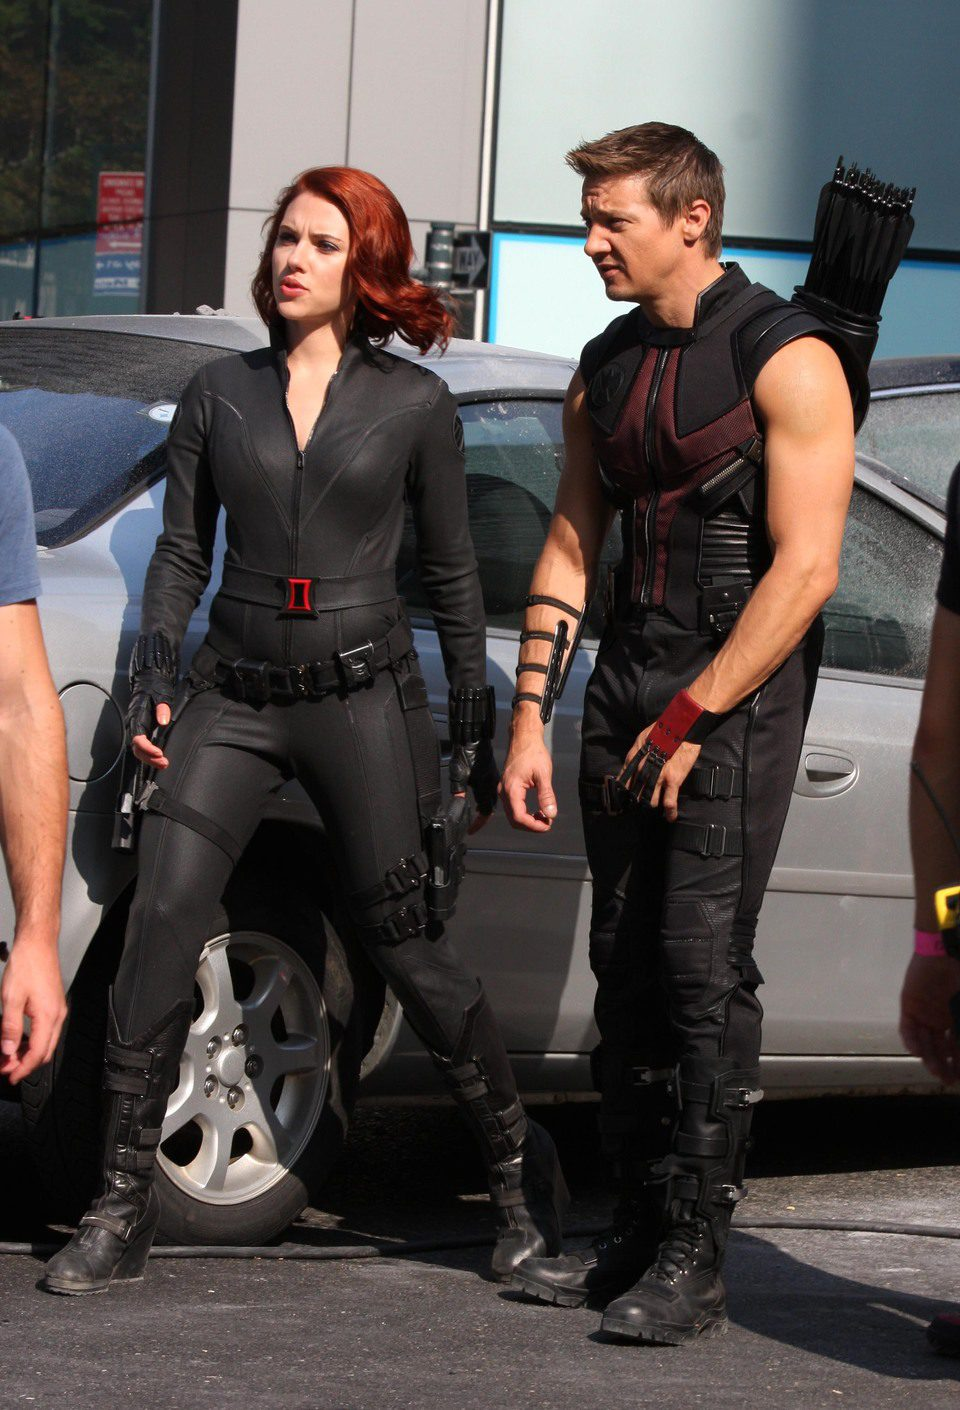 Pin Jeremy Renner Scarlett Johansson The Avengers Photo on ...